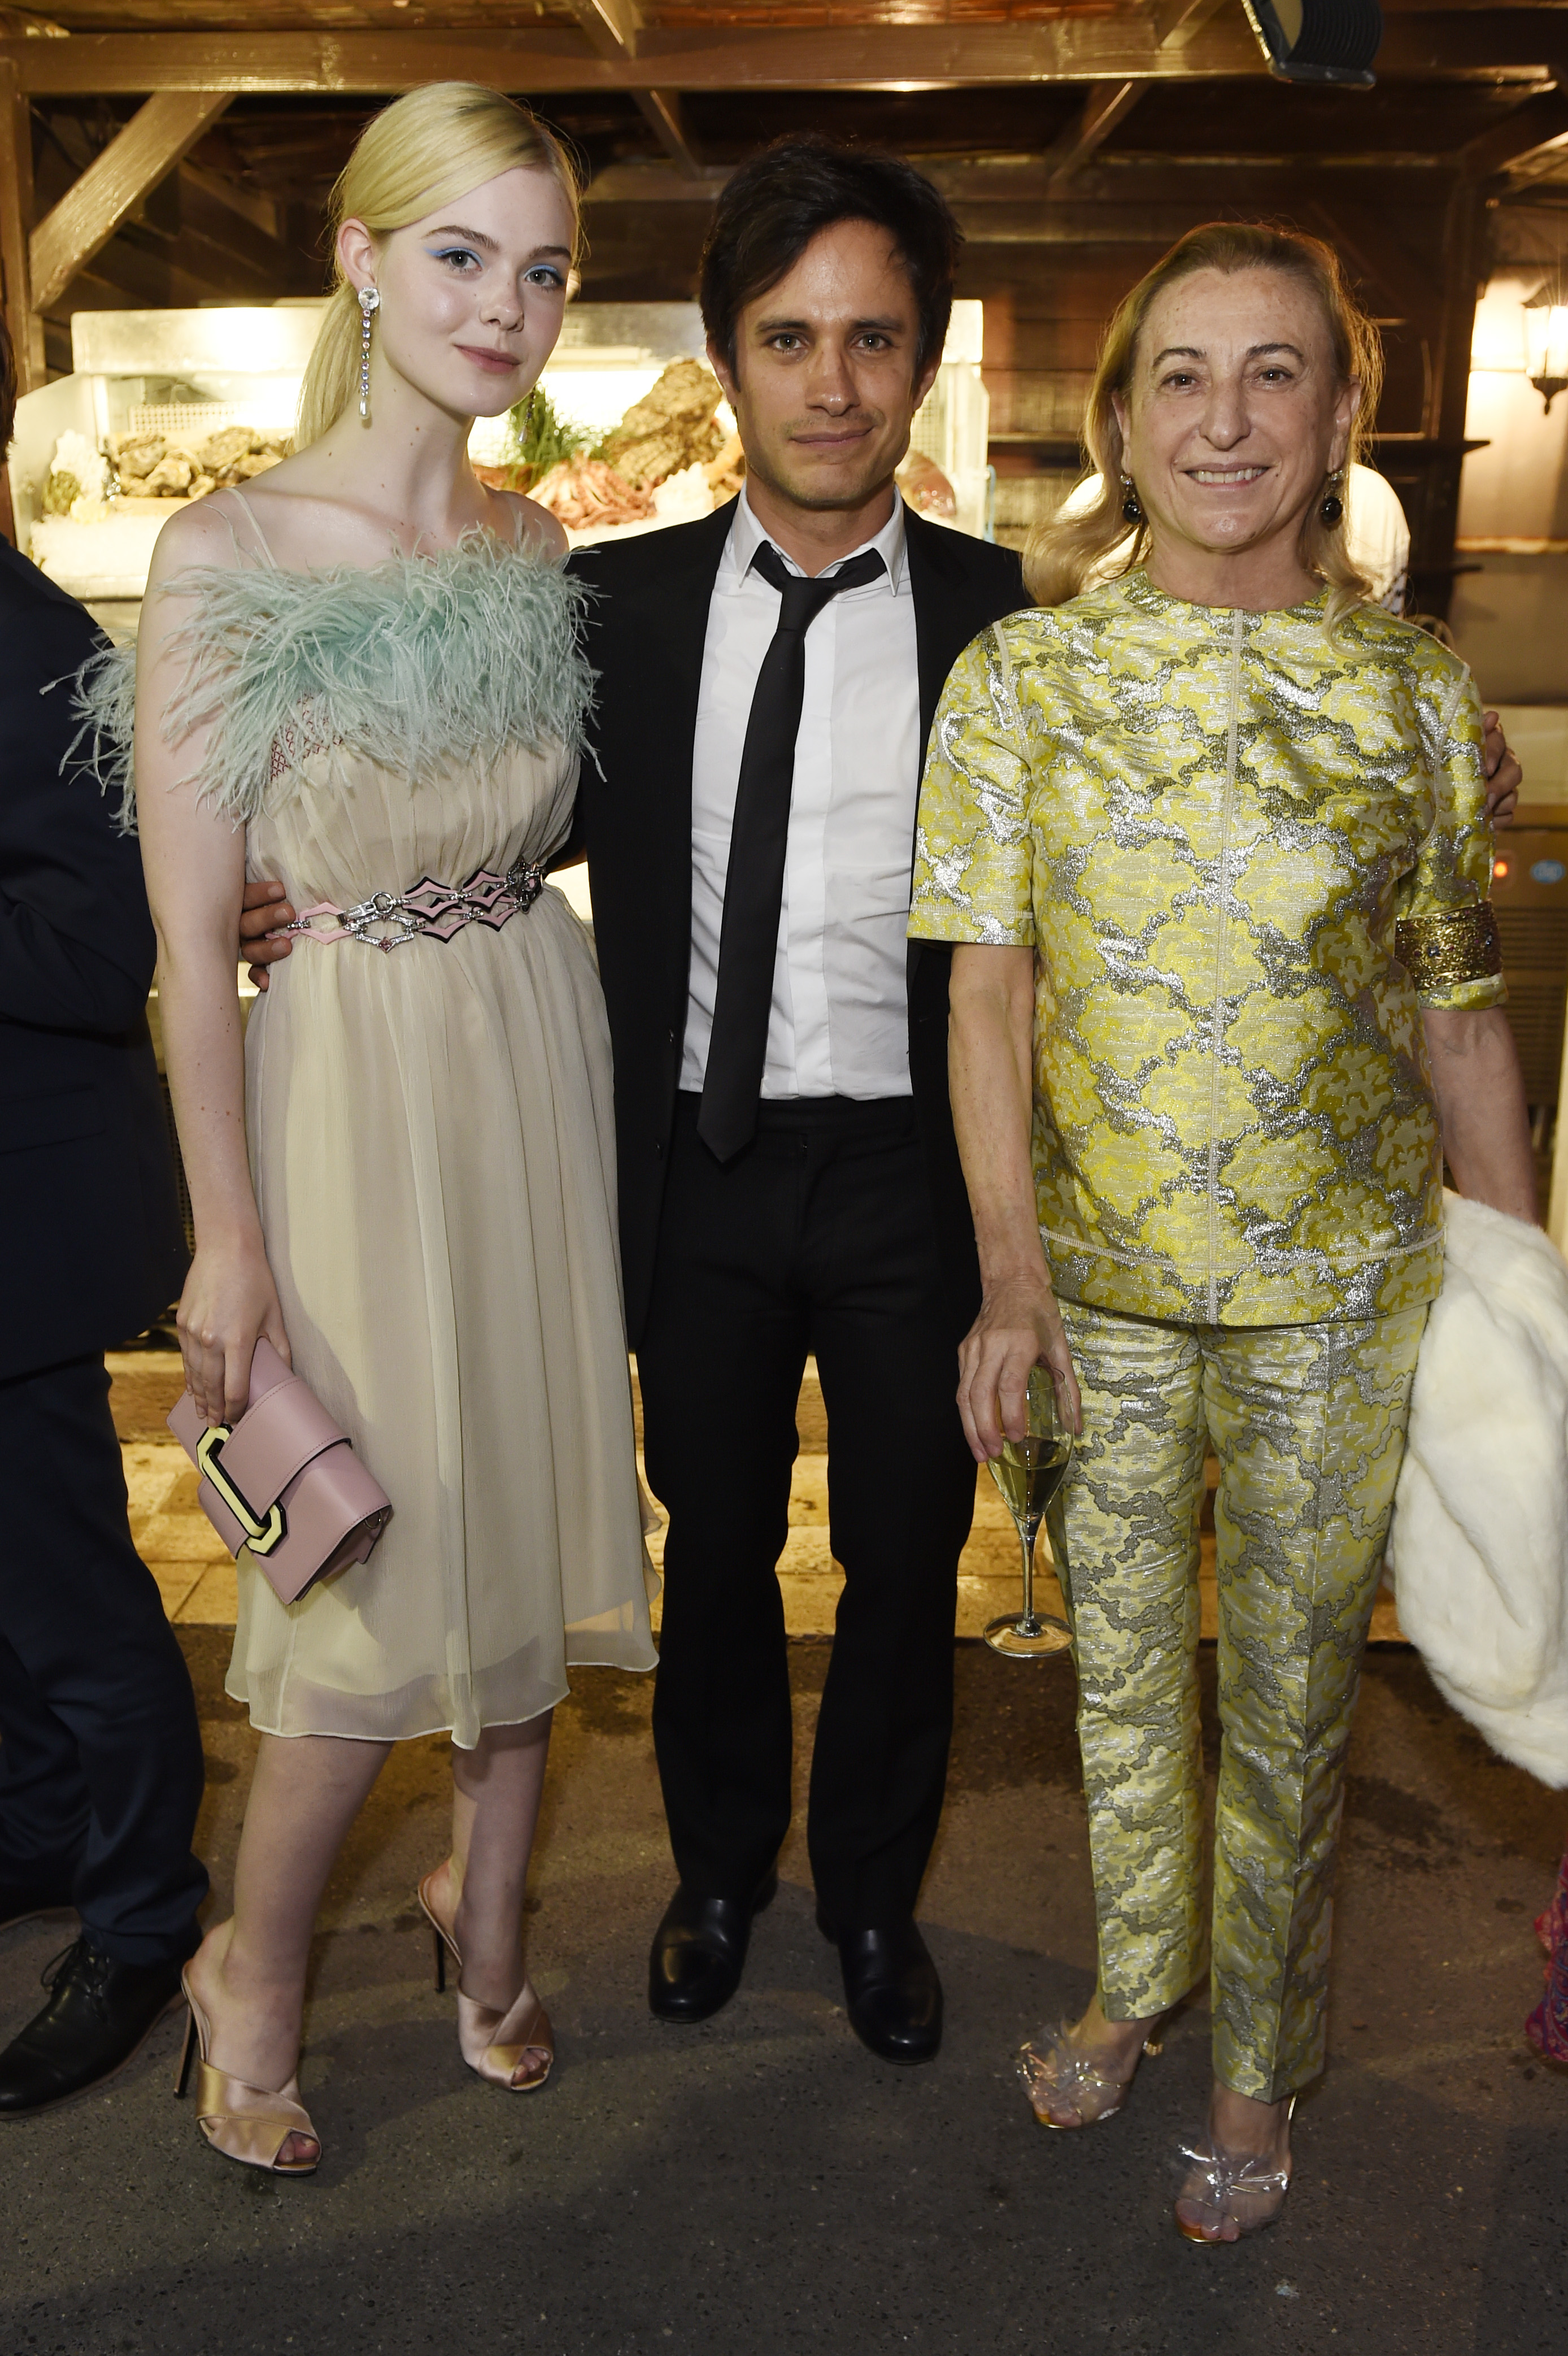 CANNES, FRANCE - MAY 22:  Elle Fanning, Gael Garcia Bernal and Miuccia Prada attend Prada Private Dinner during the 70th annual Cannes Film Festival at Restaurant Fred L'Ecailler on May 22, 2017 in Cannes, France.  (Photo by Antony Jones/Getty Images for Prada)